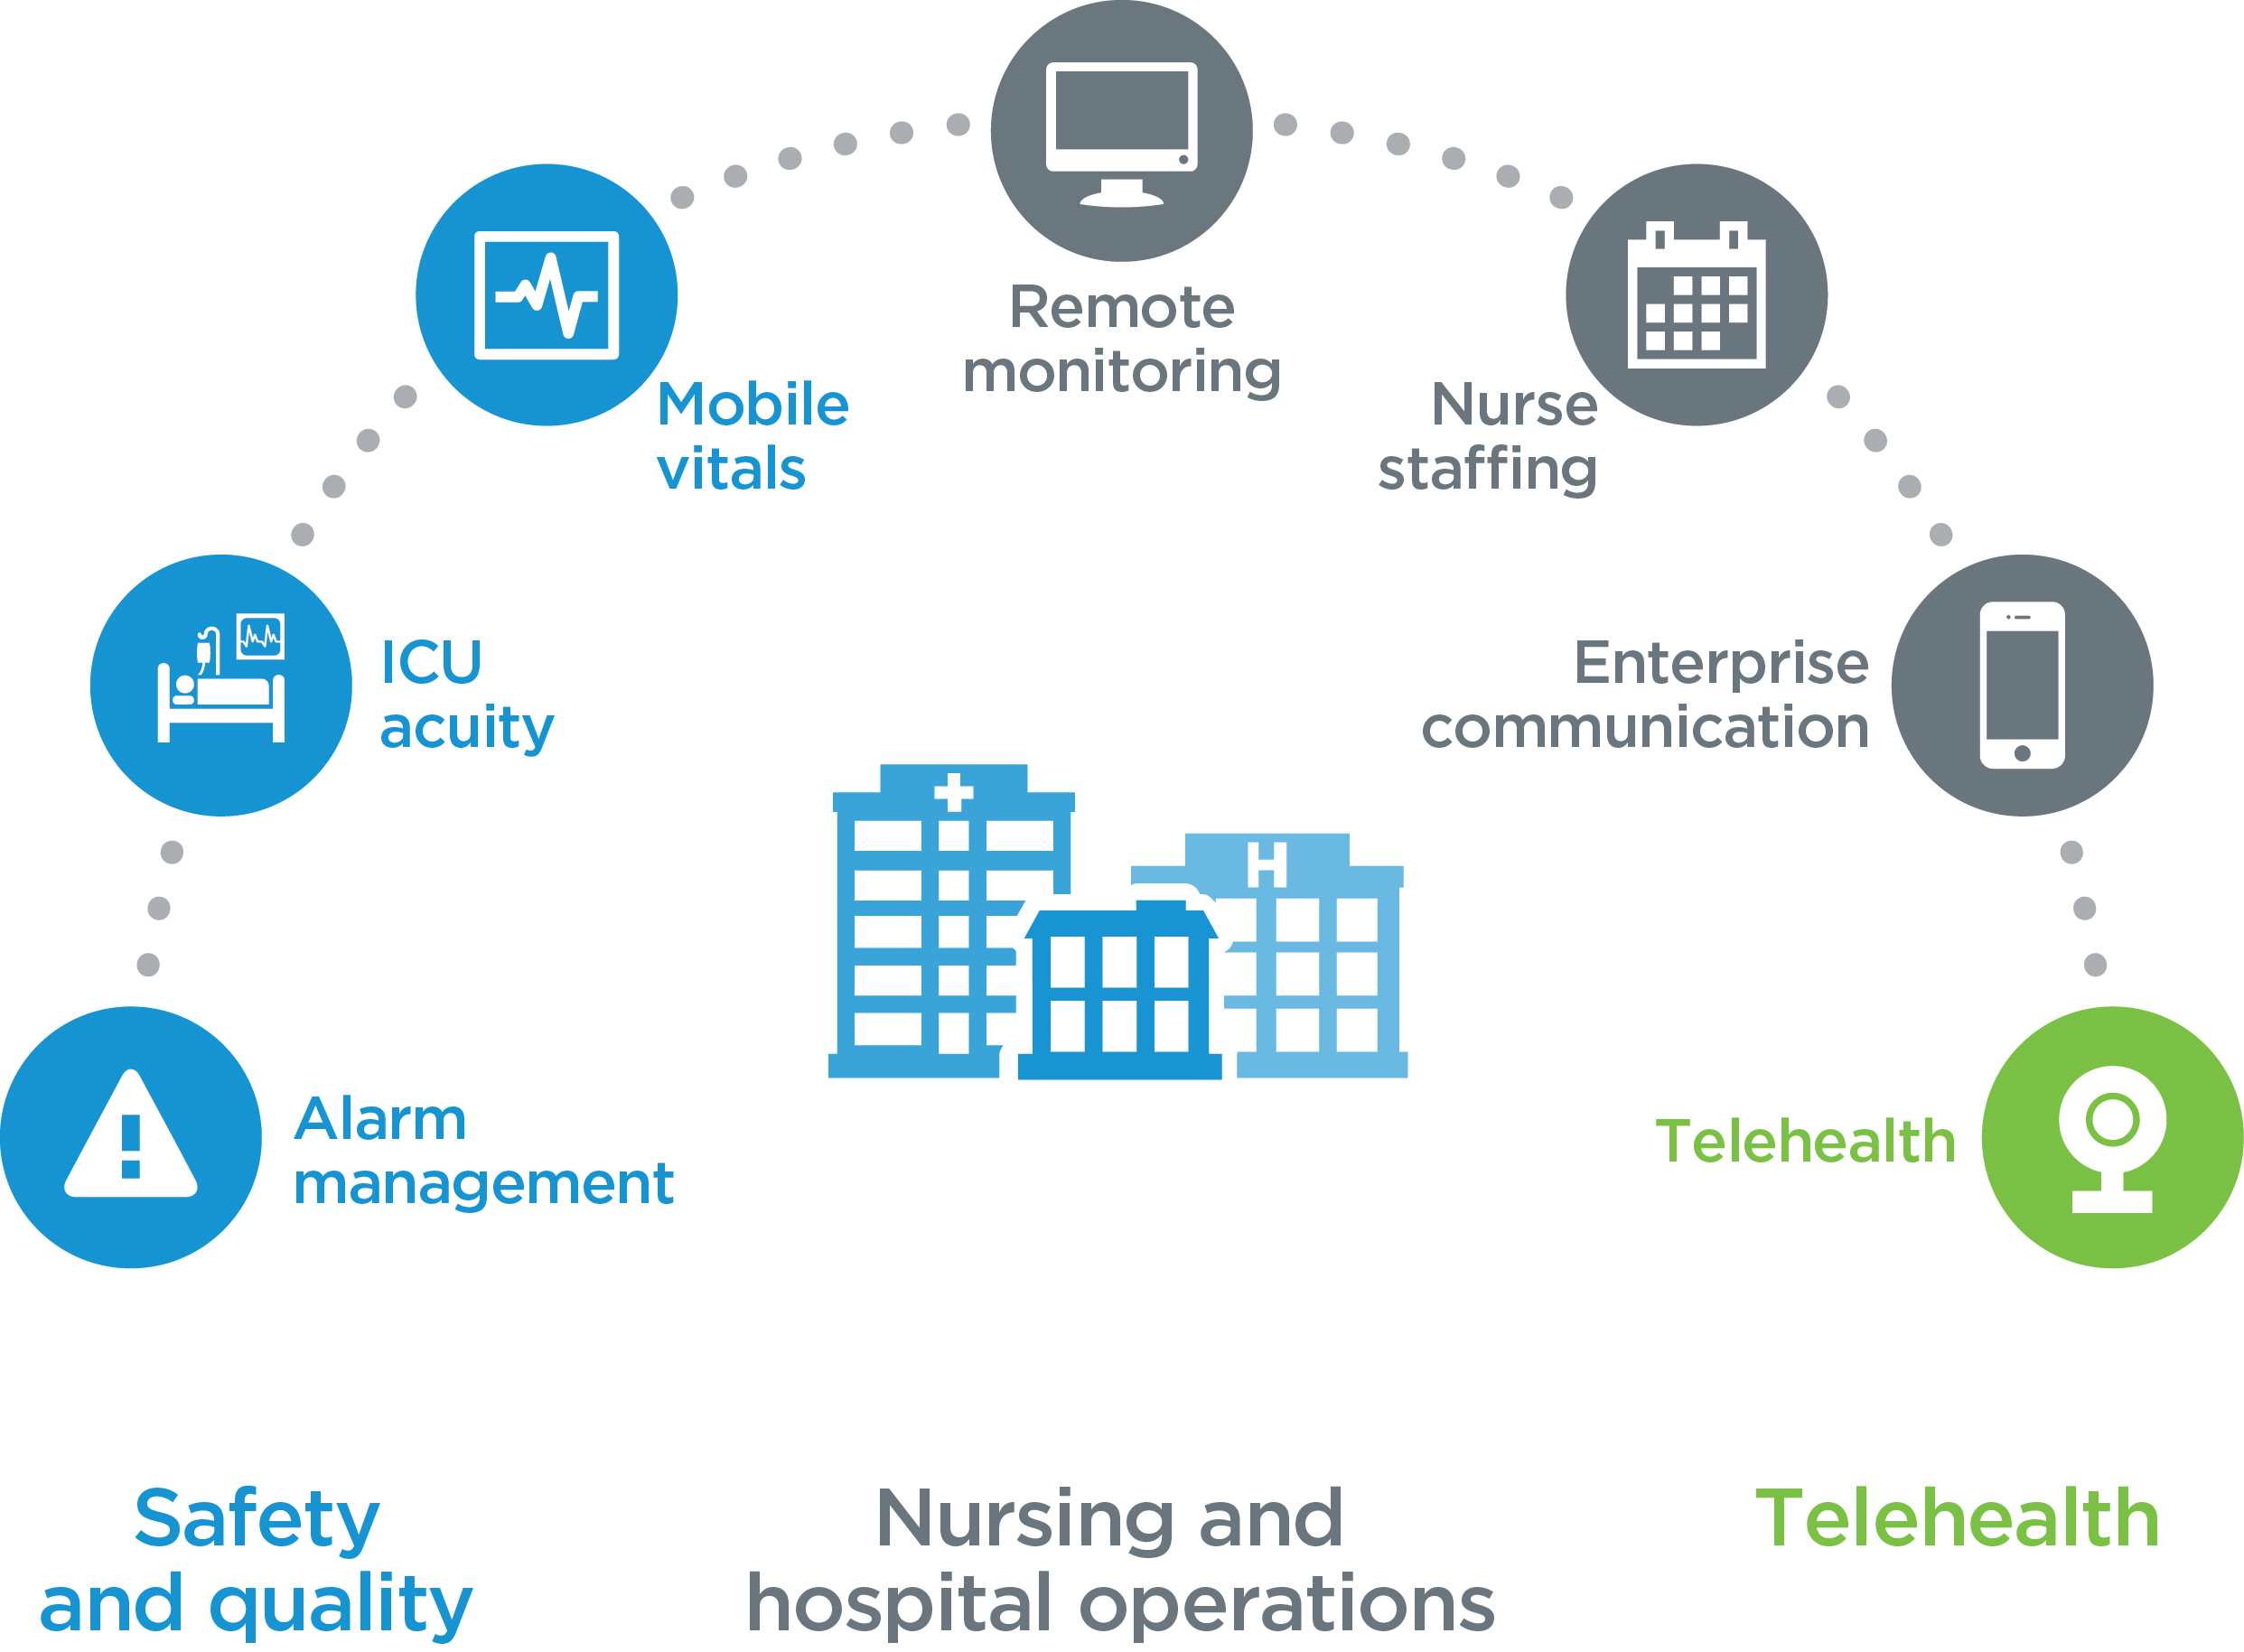 By Enabling Seamless Connectivity Among Medical Devices Nurse Call Systems Location Based Technologies And Other Network Connected Careaware Can